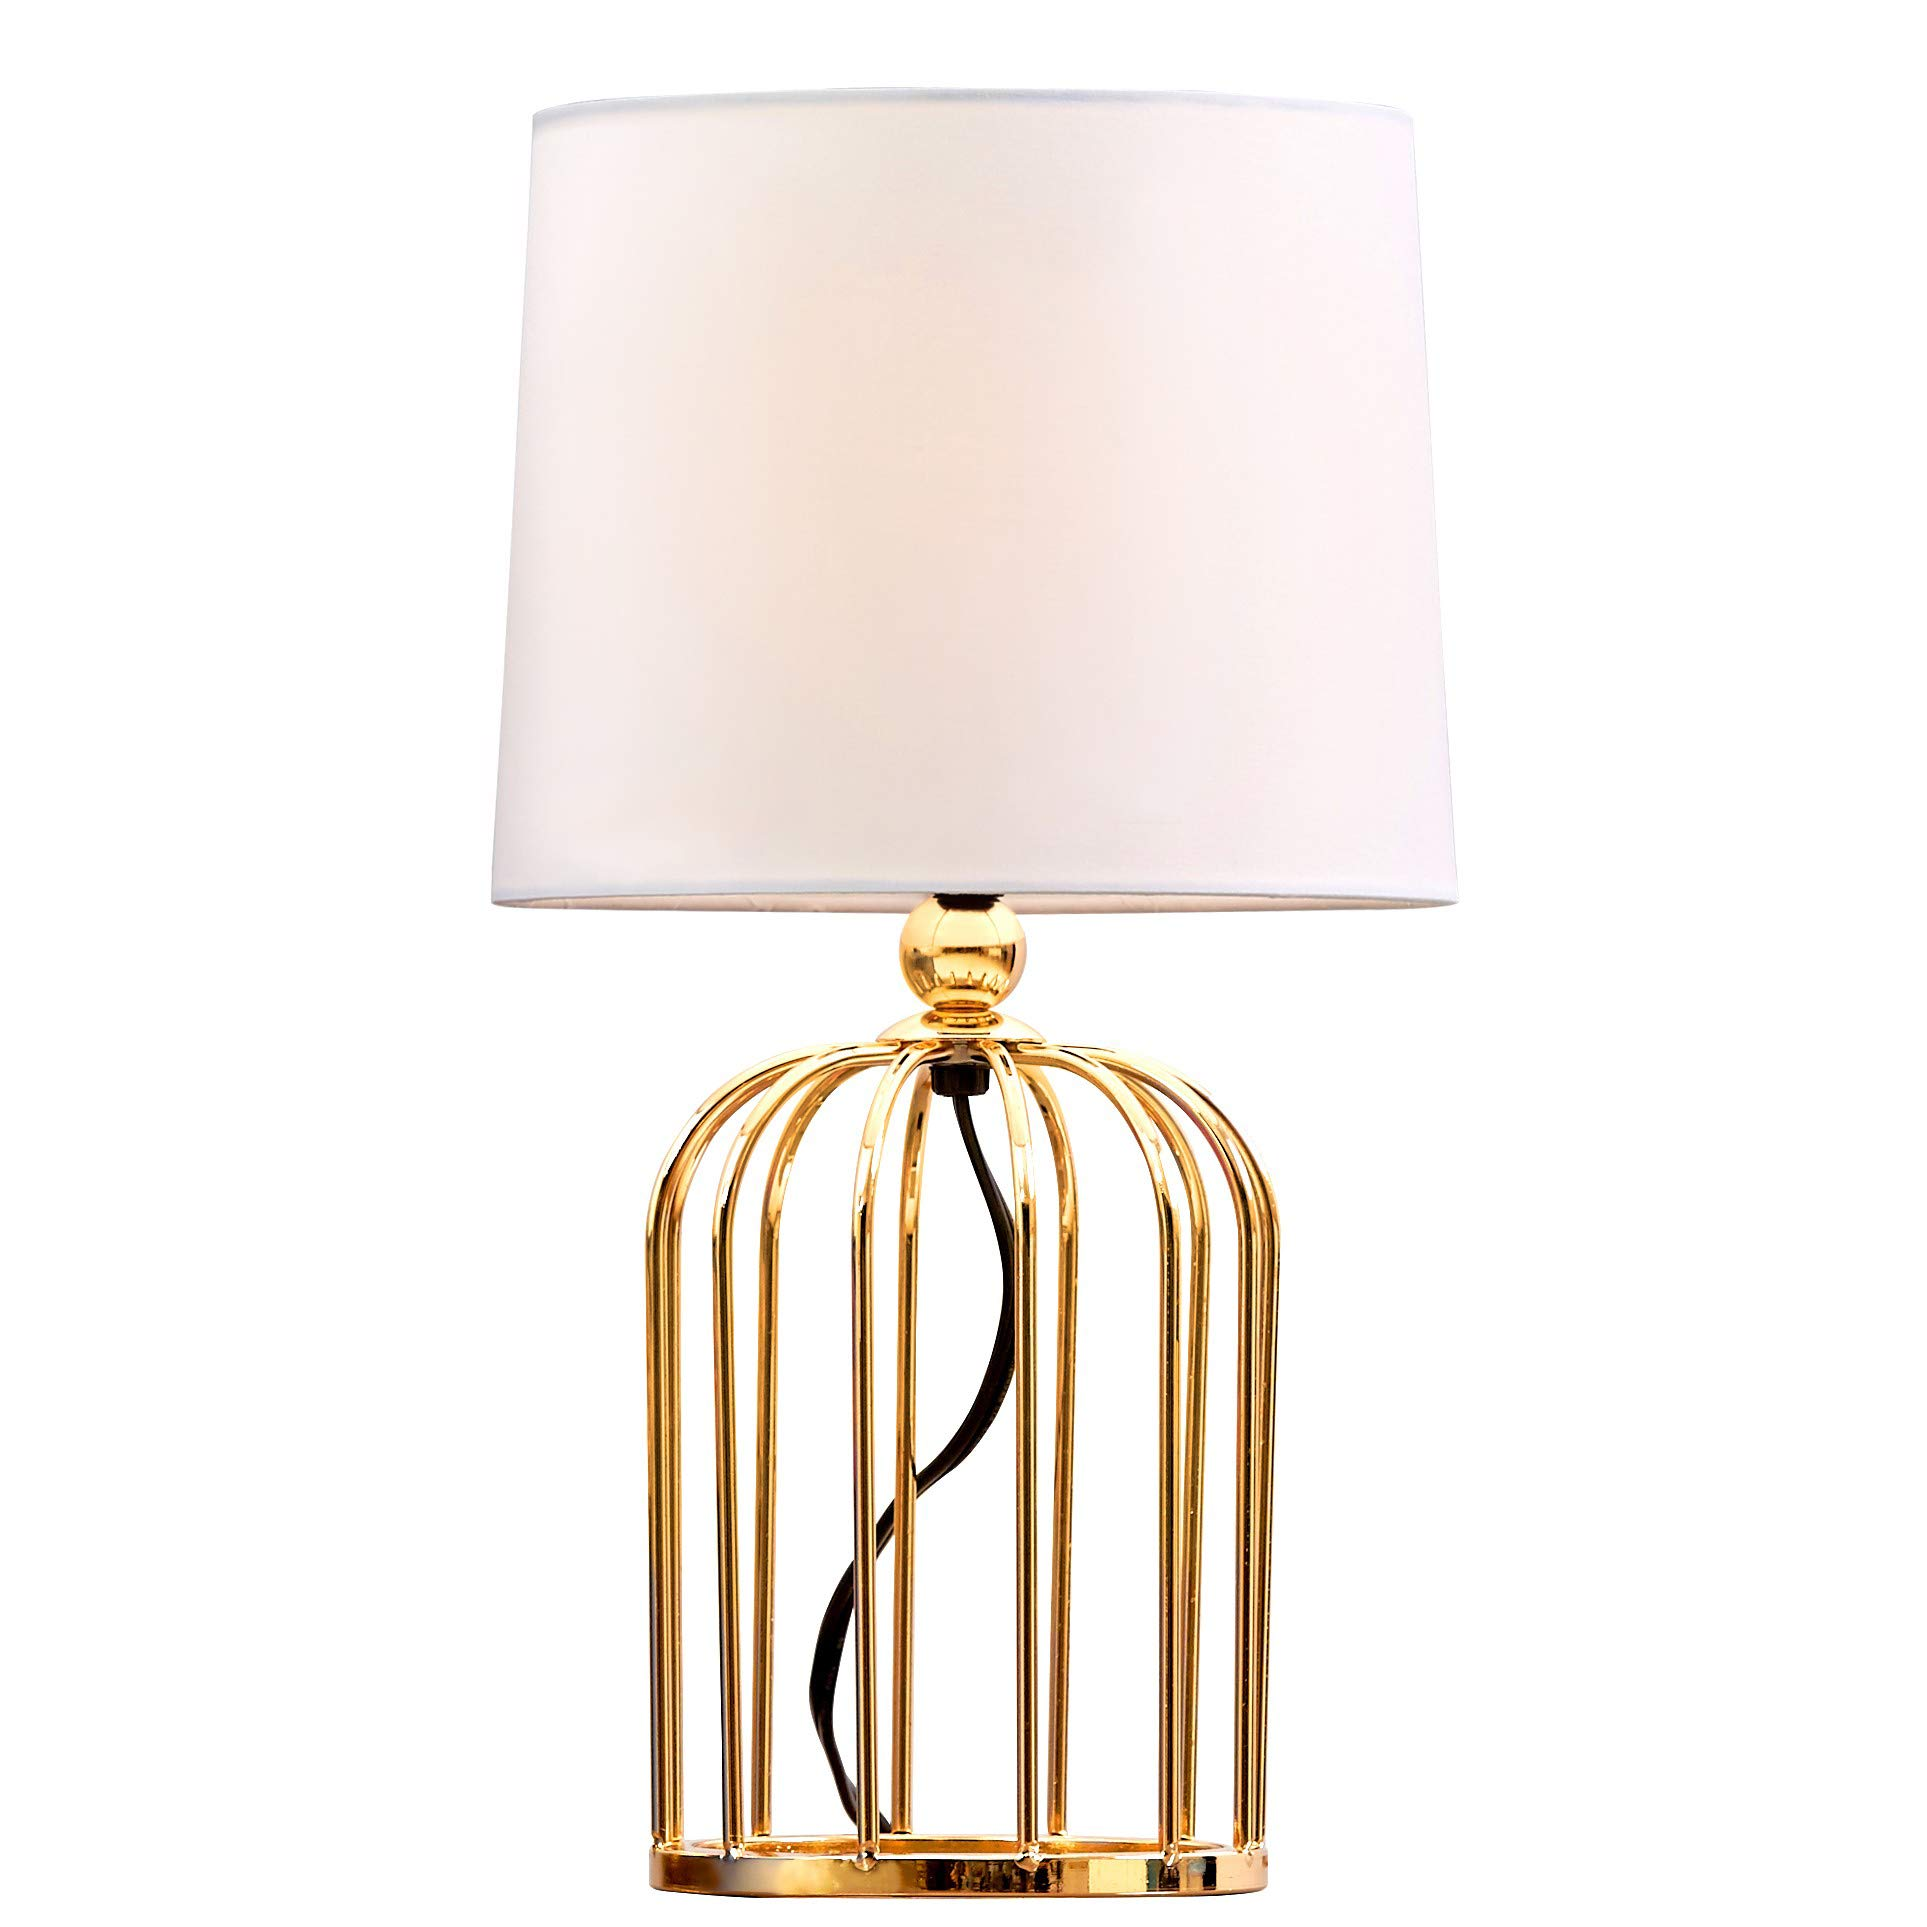 Gold Bedroom Living Room Bedside Nightsand Table Lamp, Hollow out Base with White Shade